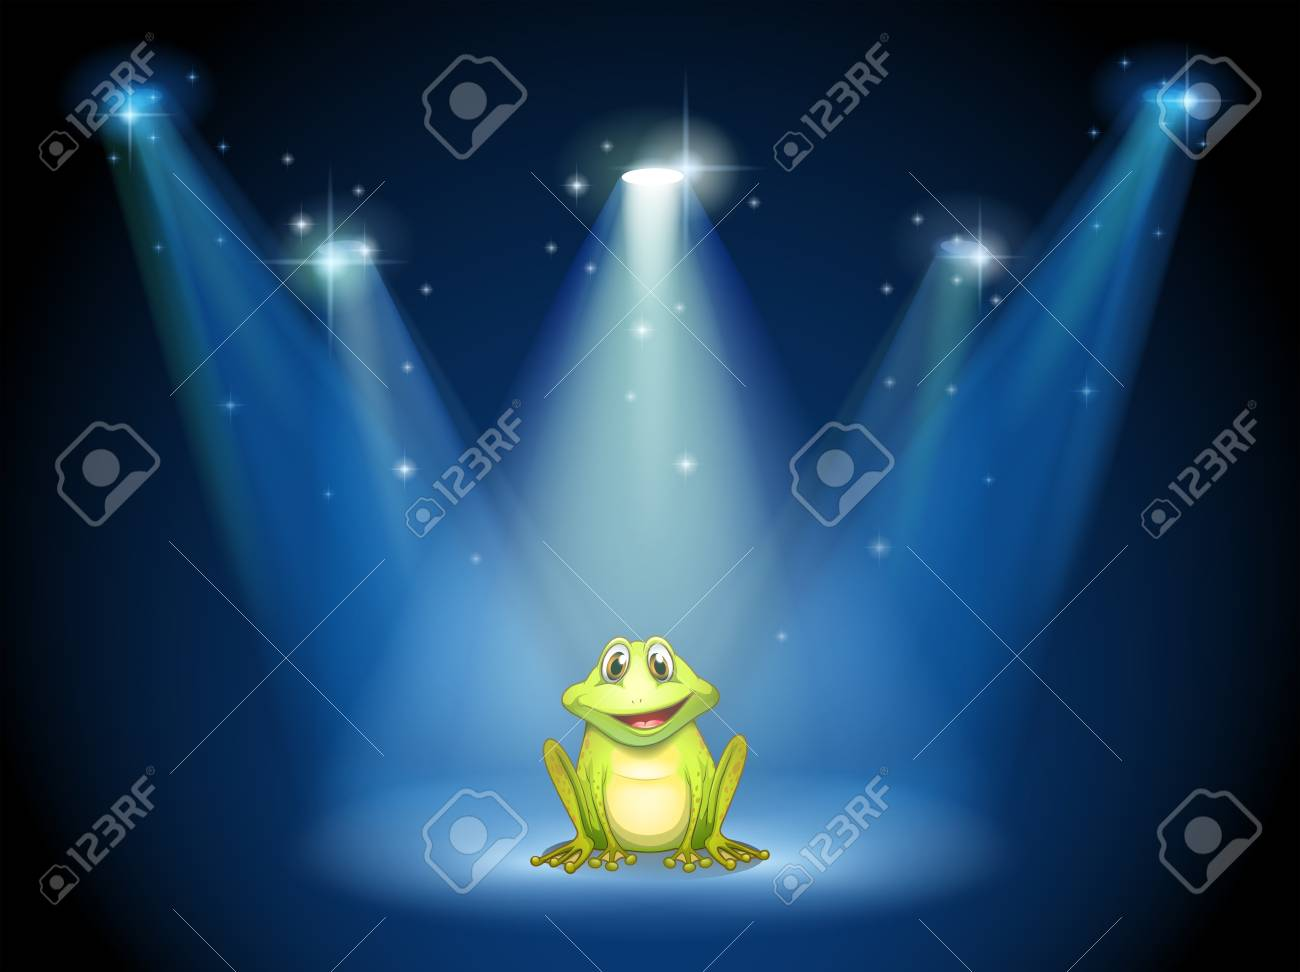 Illustration of a smiling frog at the center of the stage Stock Vector - 19718720